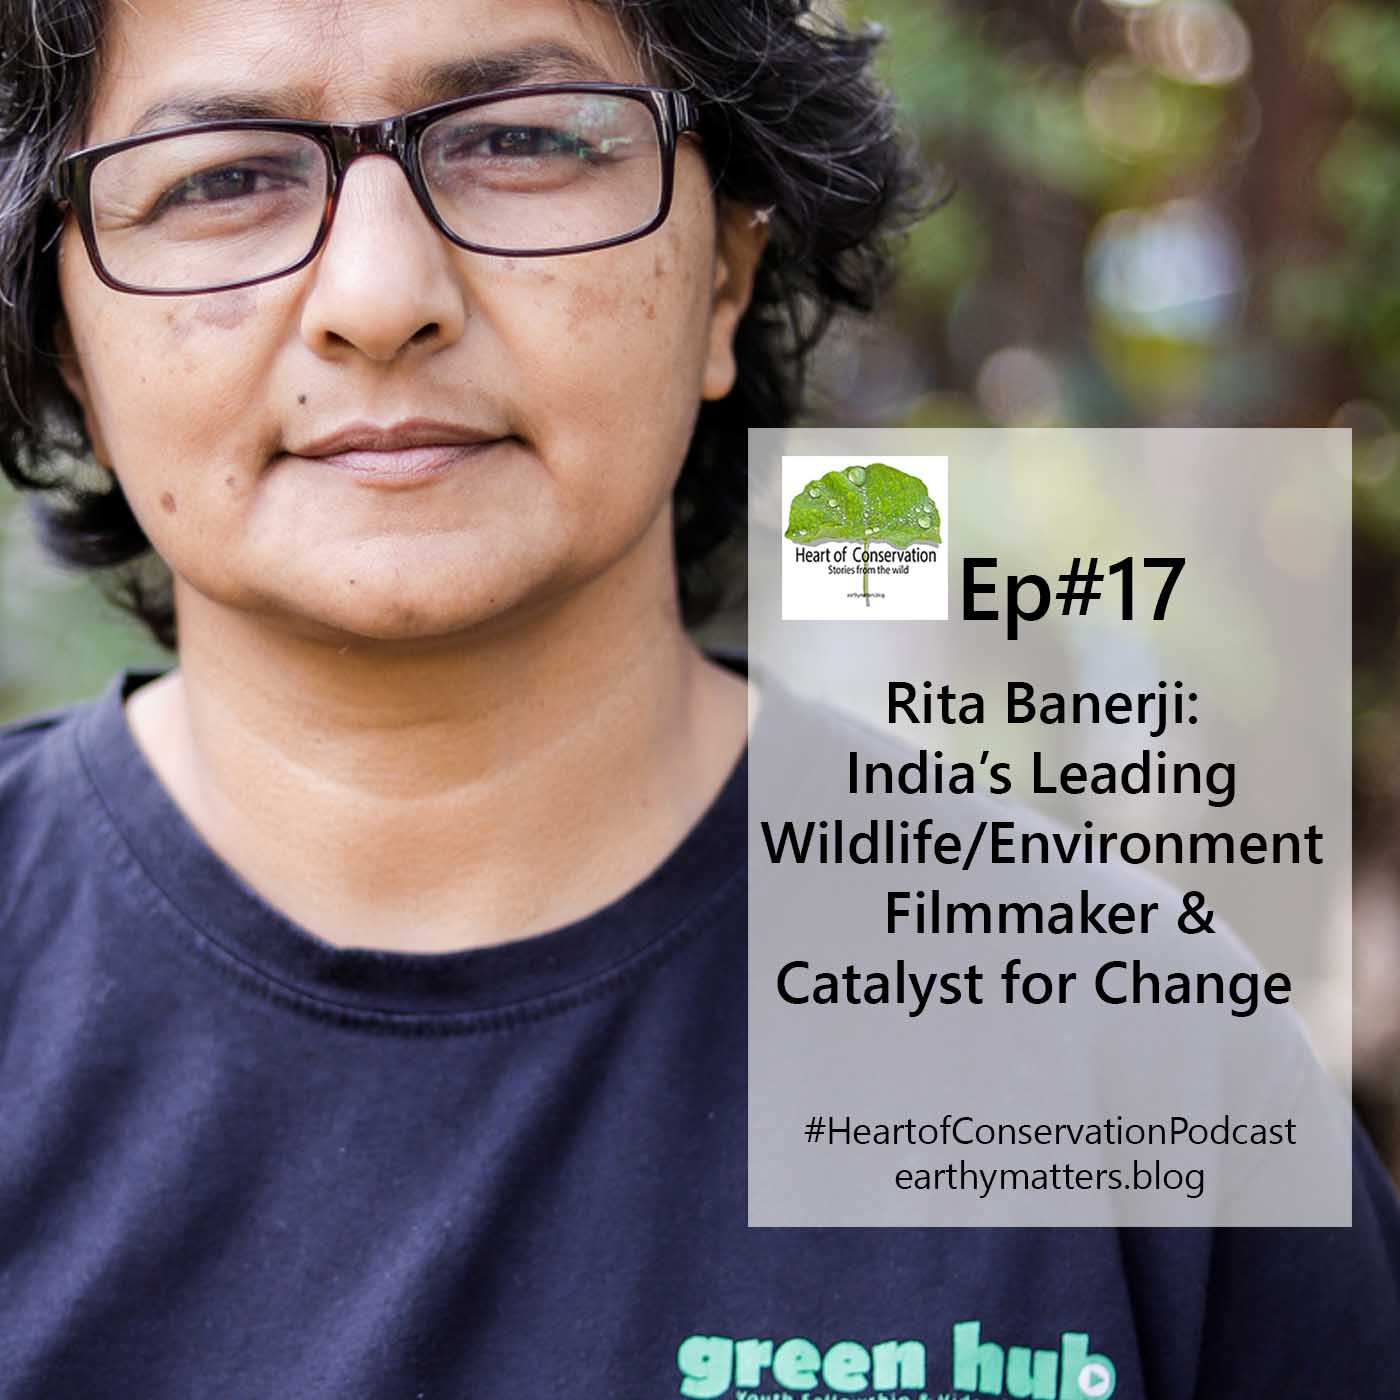 Rita Banerji: How India's Leading Wildlife and Environment Filmmaker Became a Catalyst for Change.